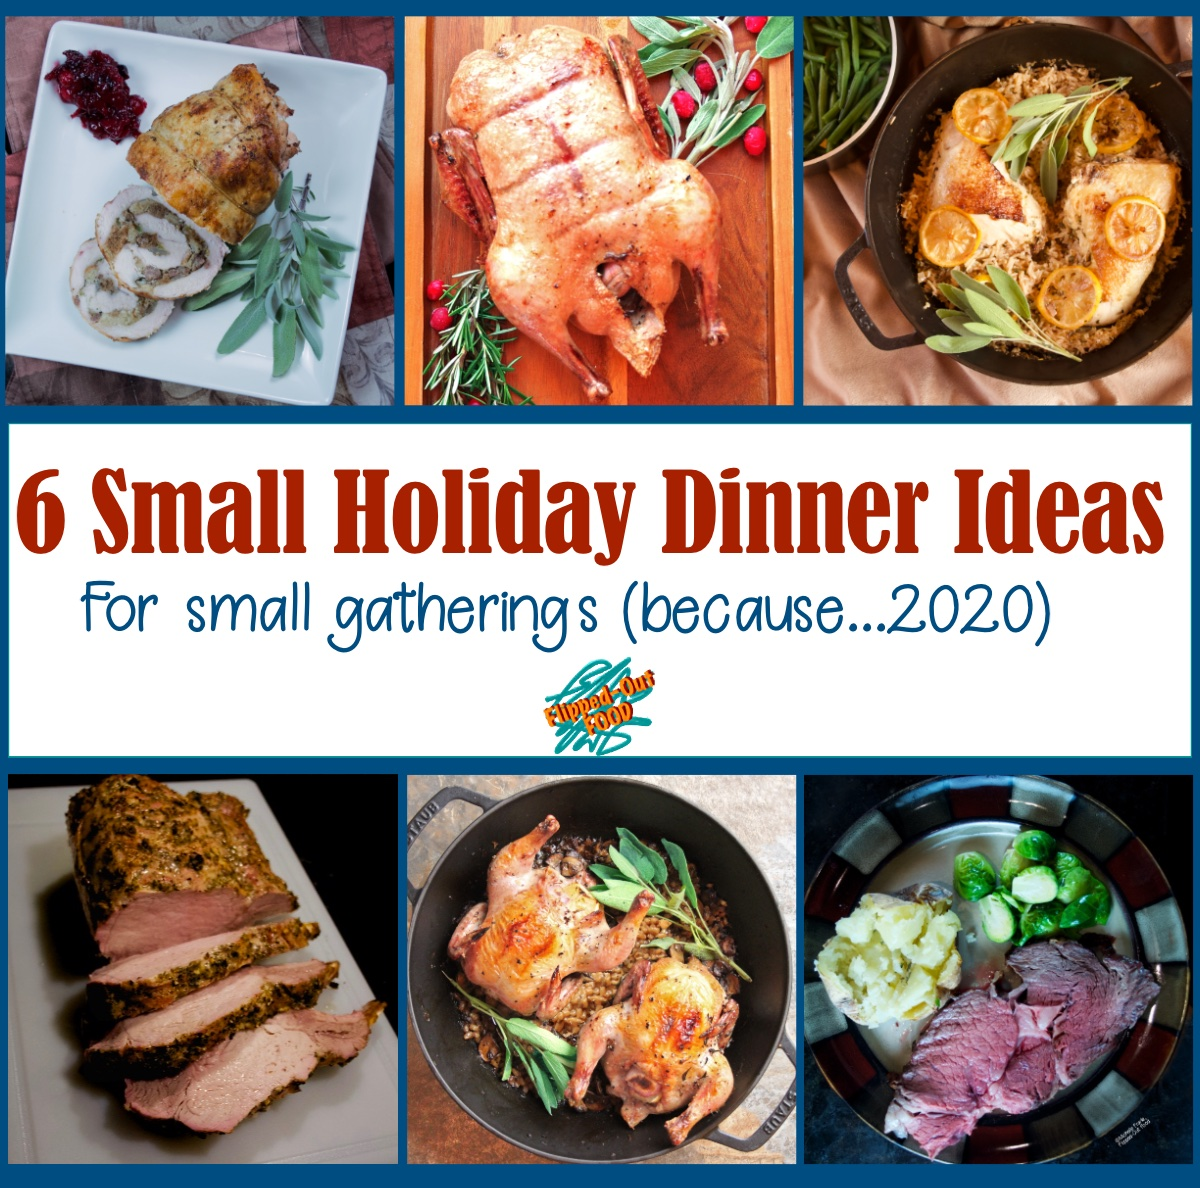 6 Small Holiday Dinner Ideas, clockwise from top left: Turkey Roulade with Sausage Stuffing, Herbed Roast Duck, One-Pot Meyer Lemon Chicken and Rice, Date-Night Prime Rib, One-Pot Cornish Game Hens with Mushroom Barley Pilaf, Herb-Roasted Rack of Pork.